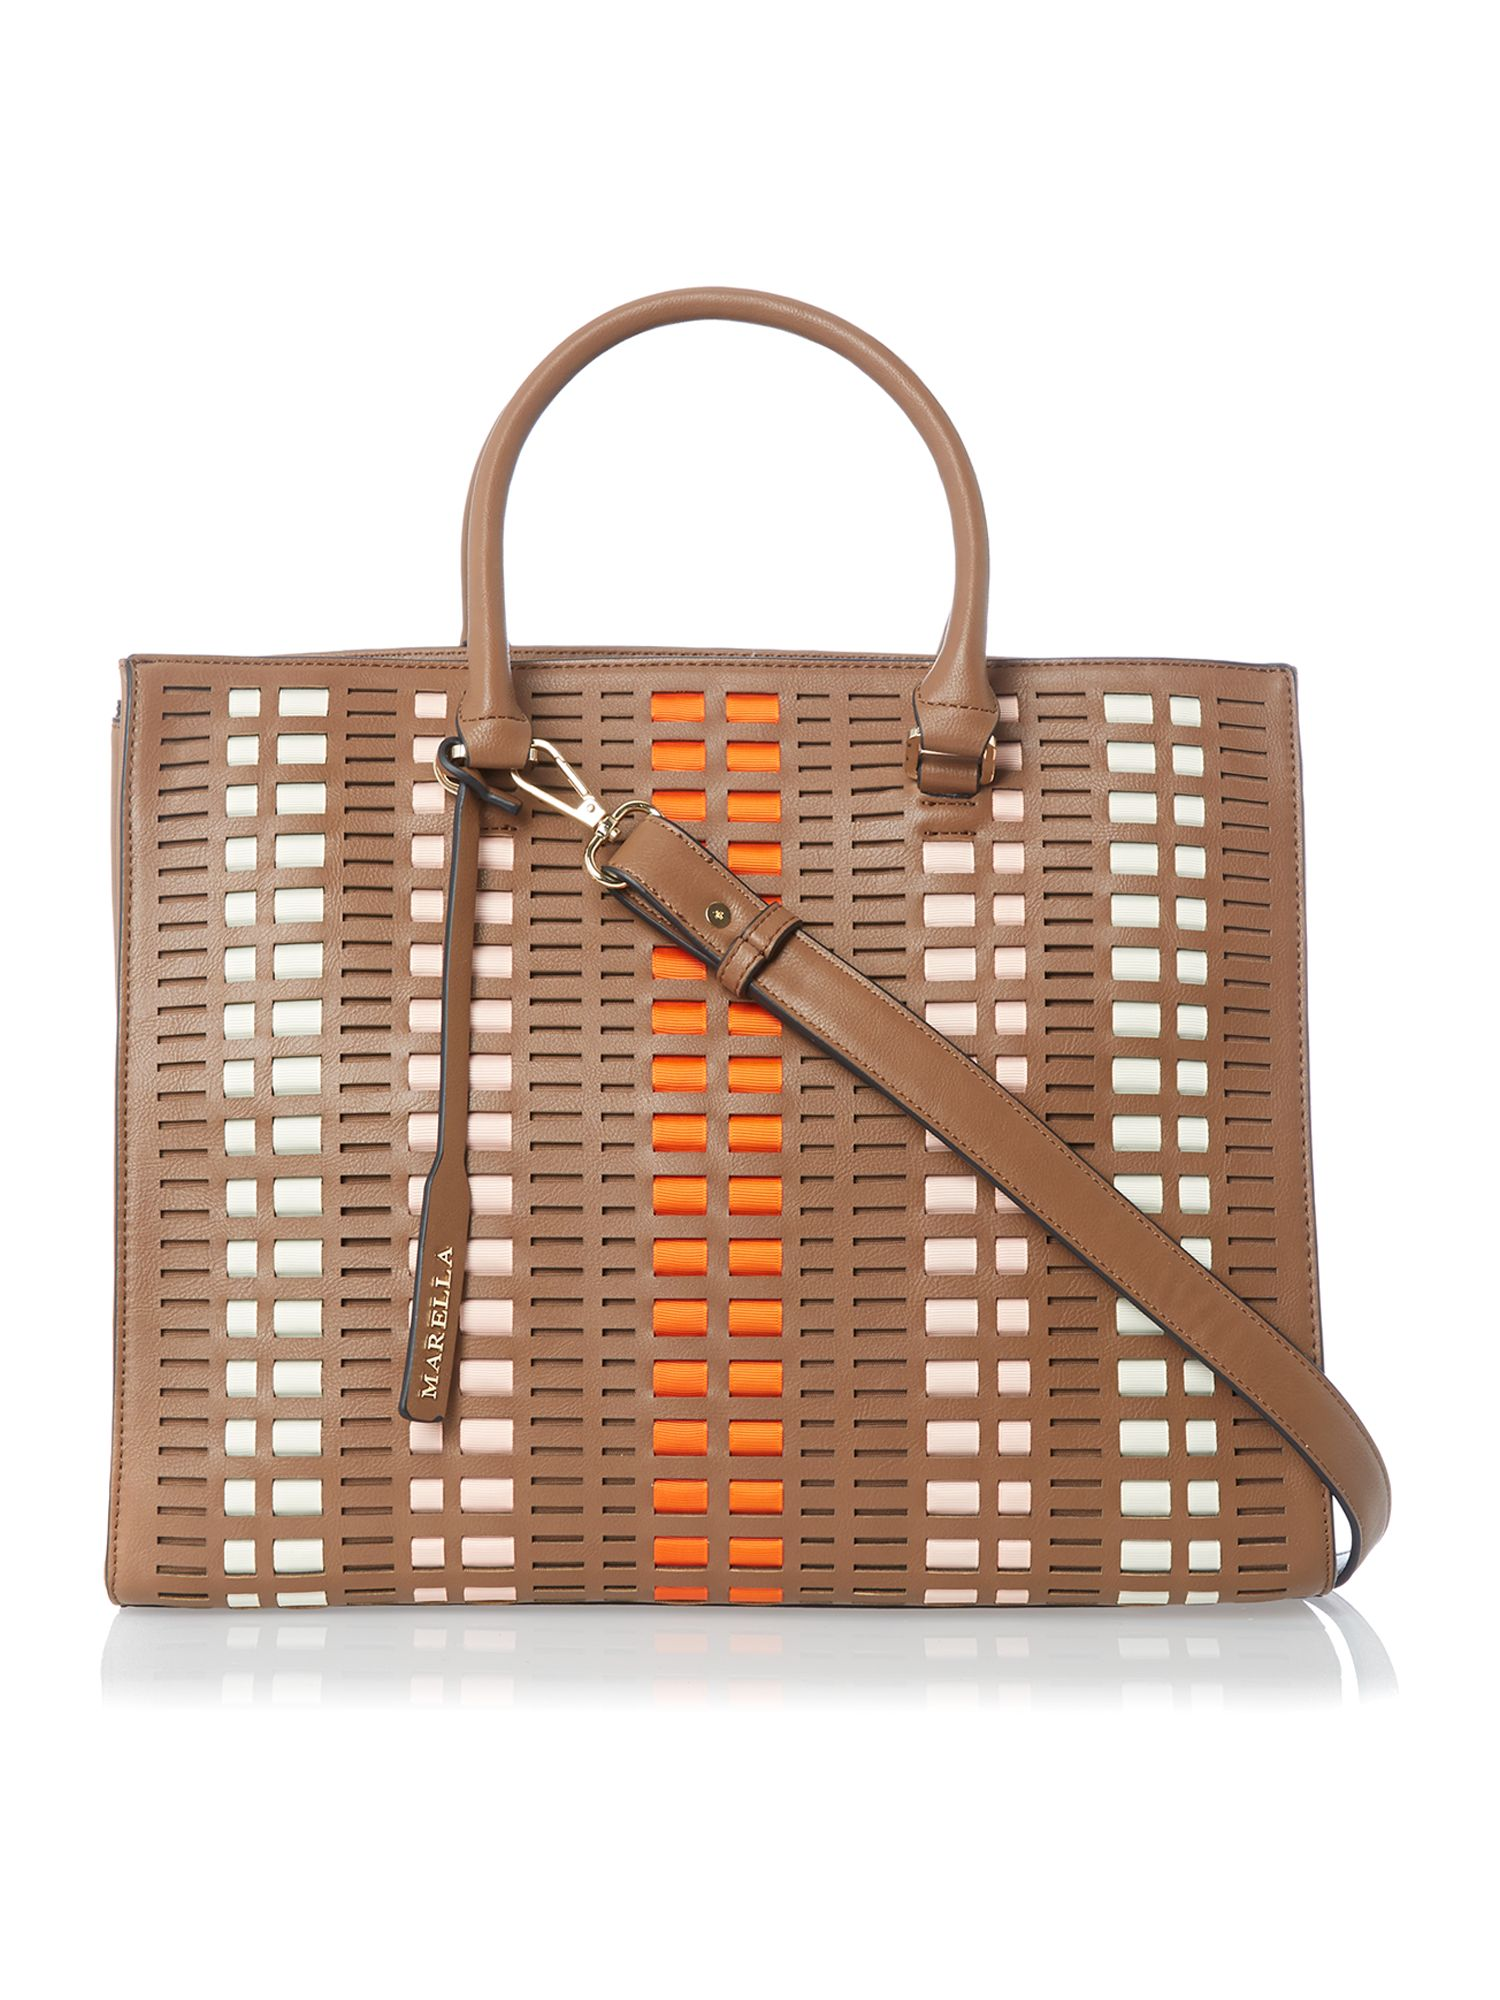 Brown woven tote bag